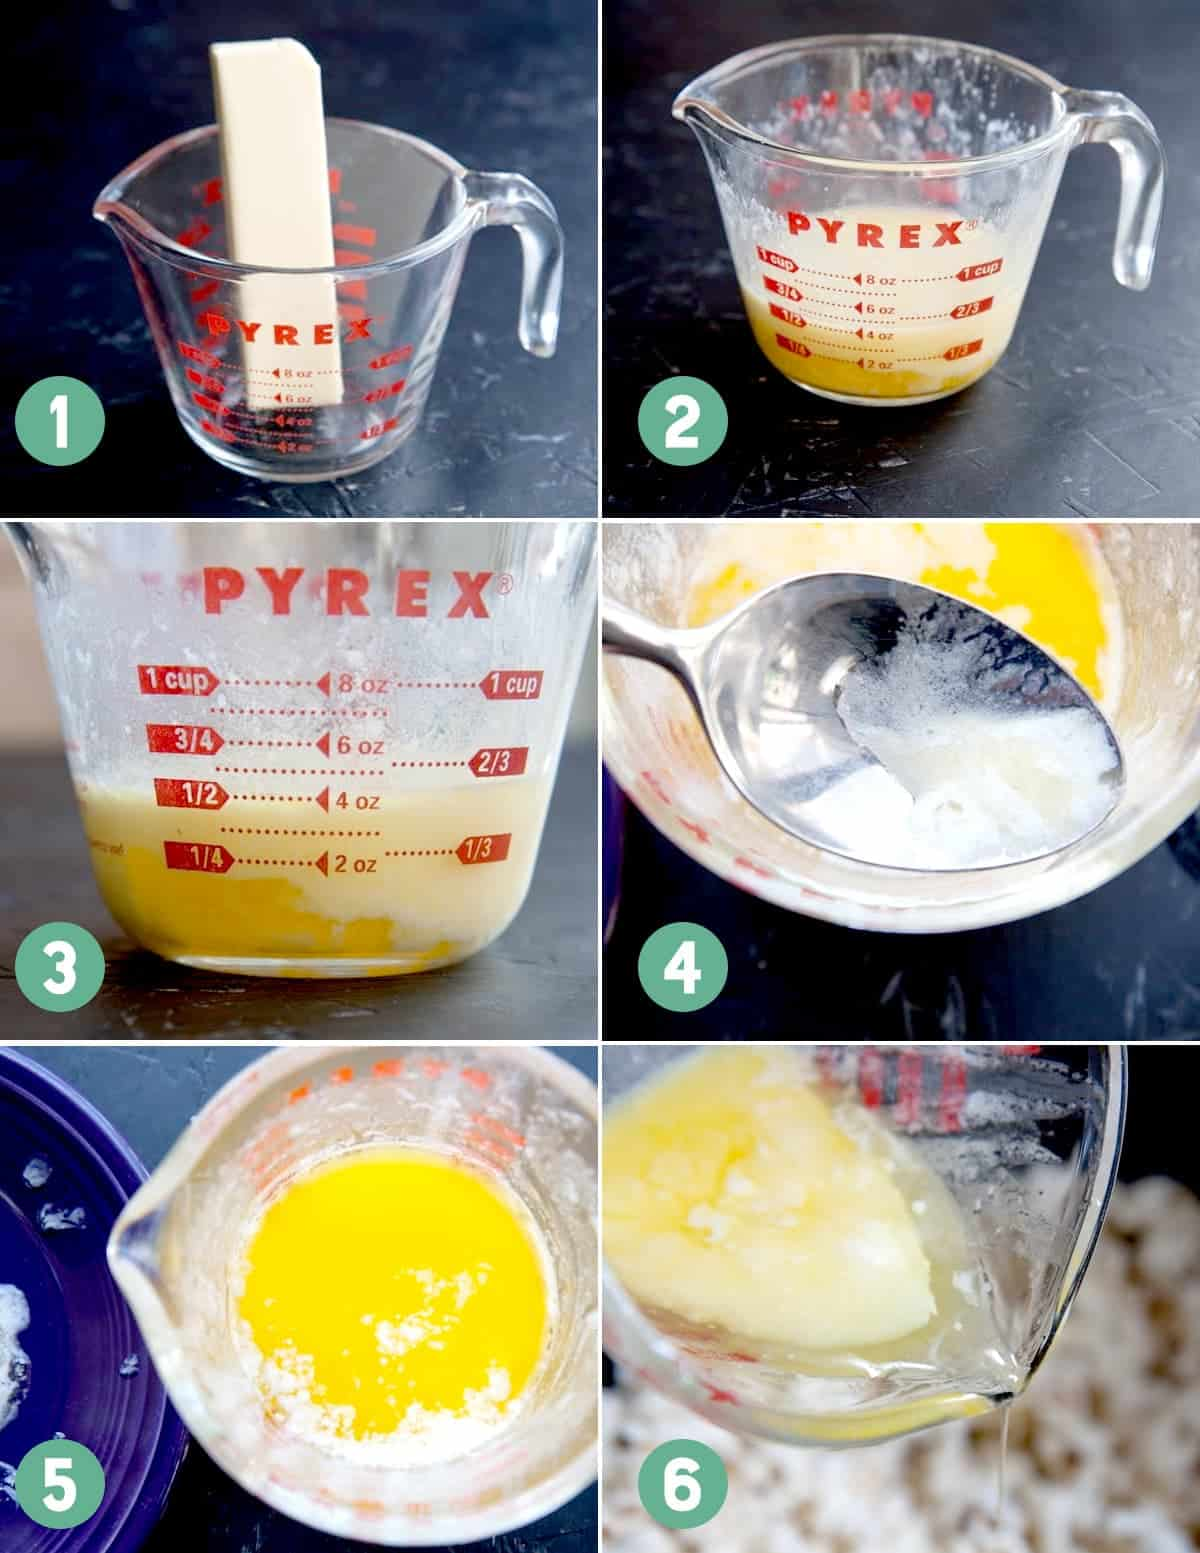 Numbered images show how to clarify butter for popcorn.